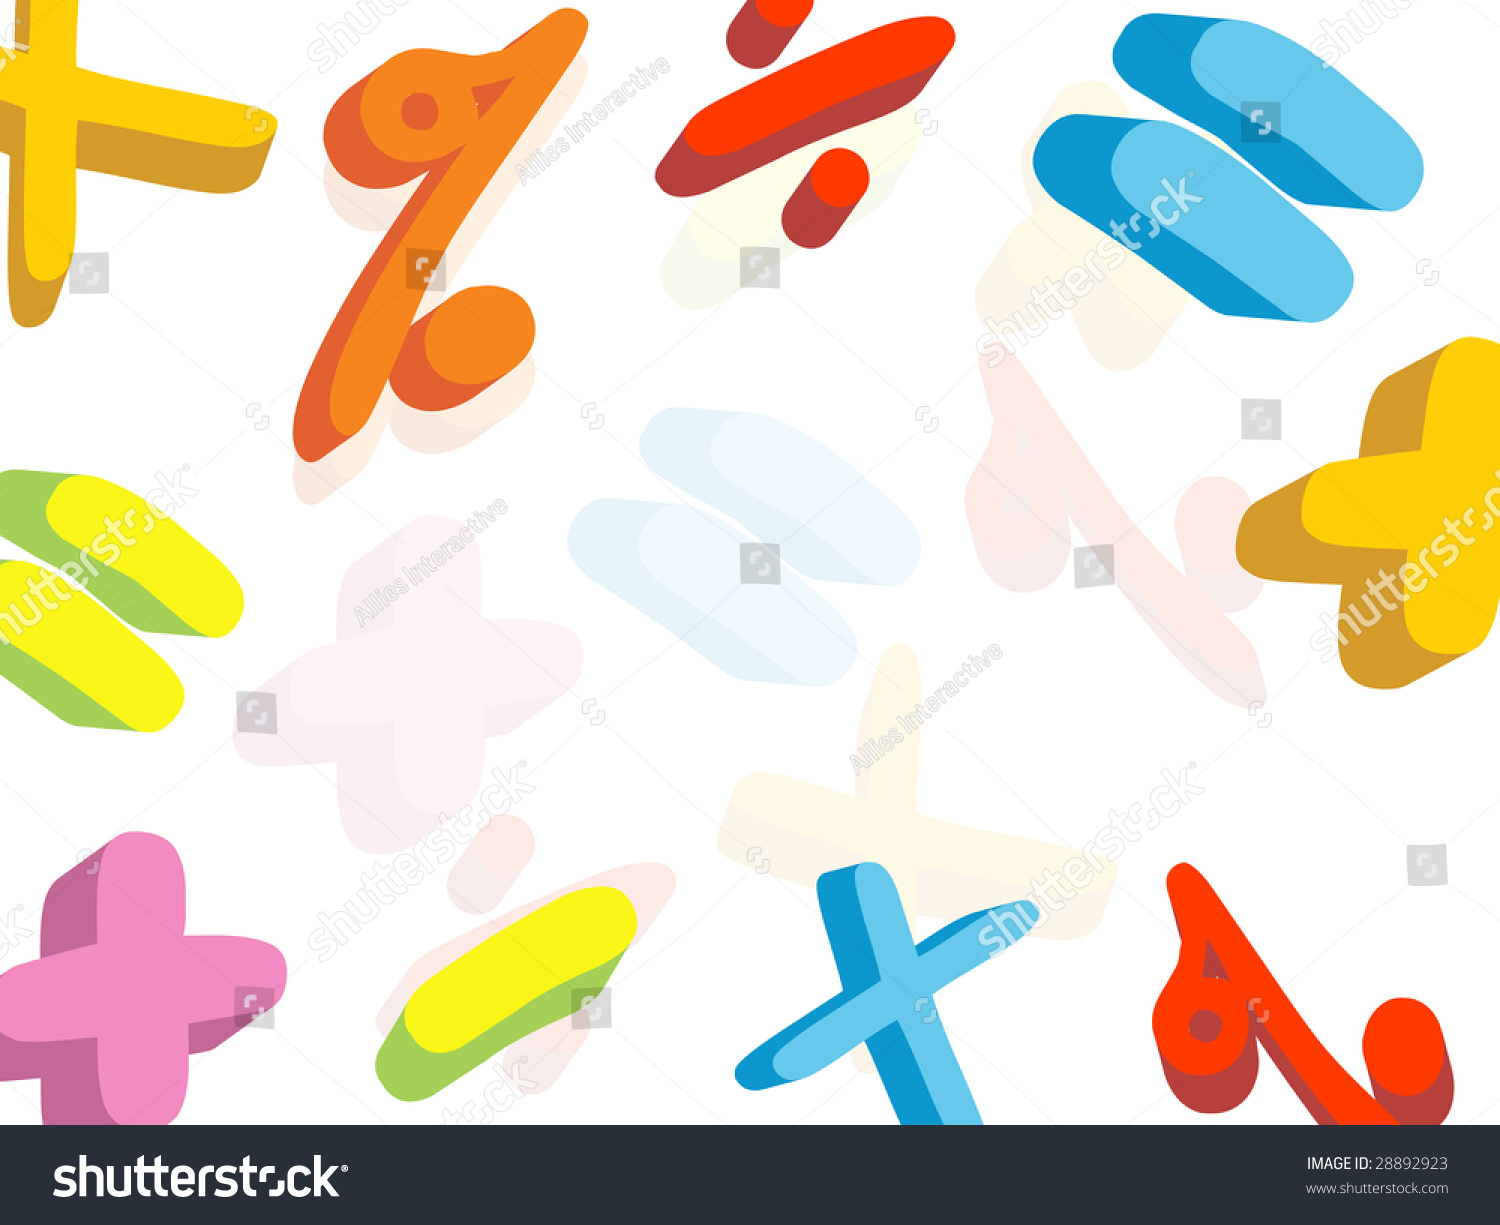 Mathematical symbol wallpaper stock vector 28892923 shutterstock mathematical symbol wallpaper biocorpaavc Images